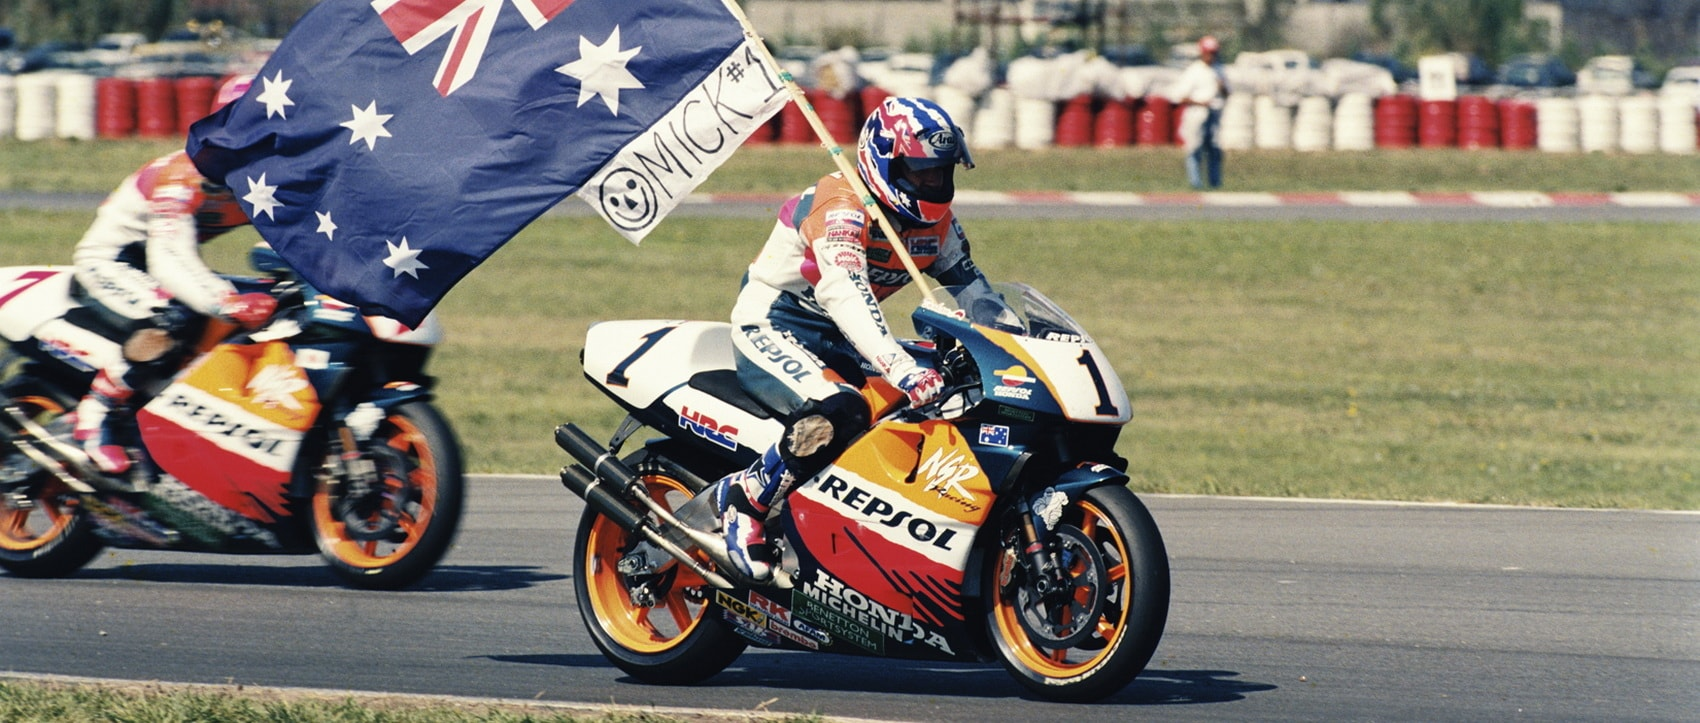 Story: Mick Doohan - A Champion That Almost Wasn't